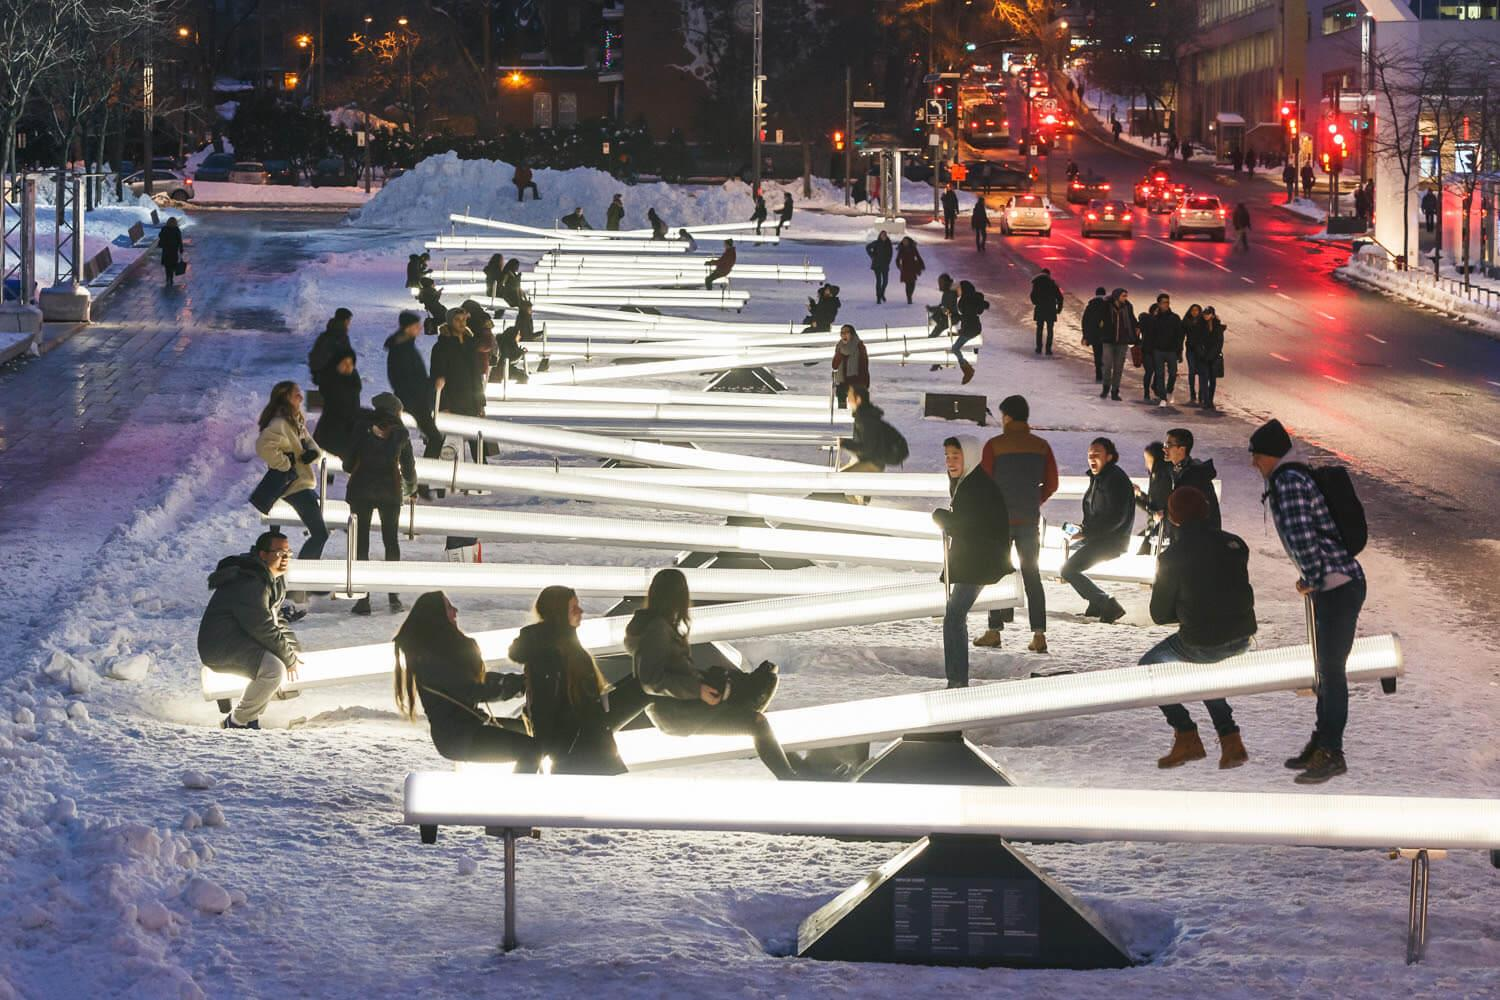 Light up, music making seesaws coming to Toronto Image